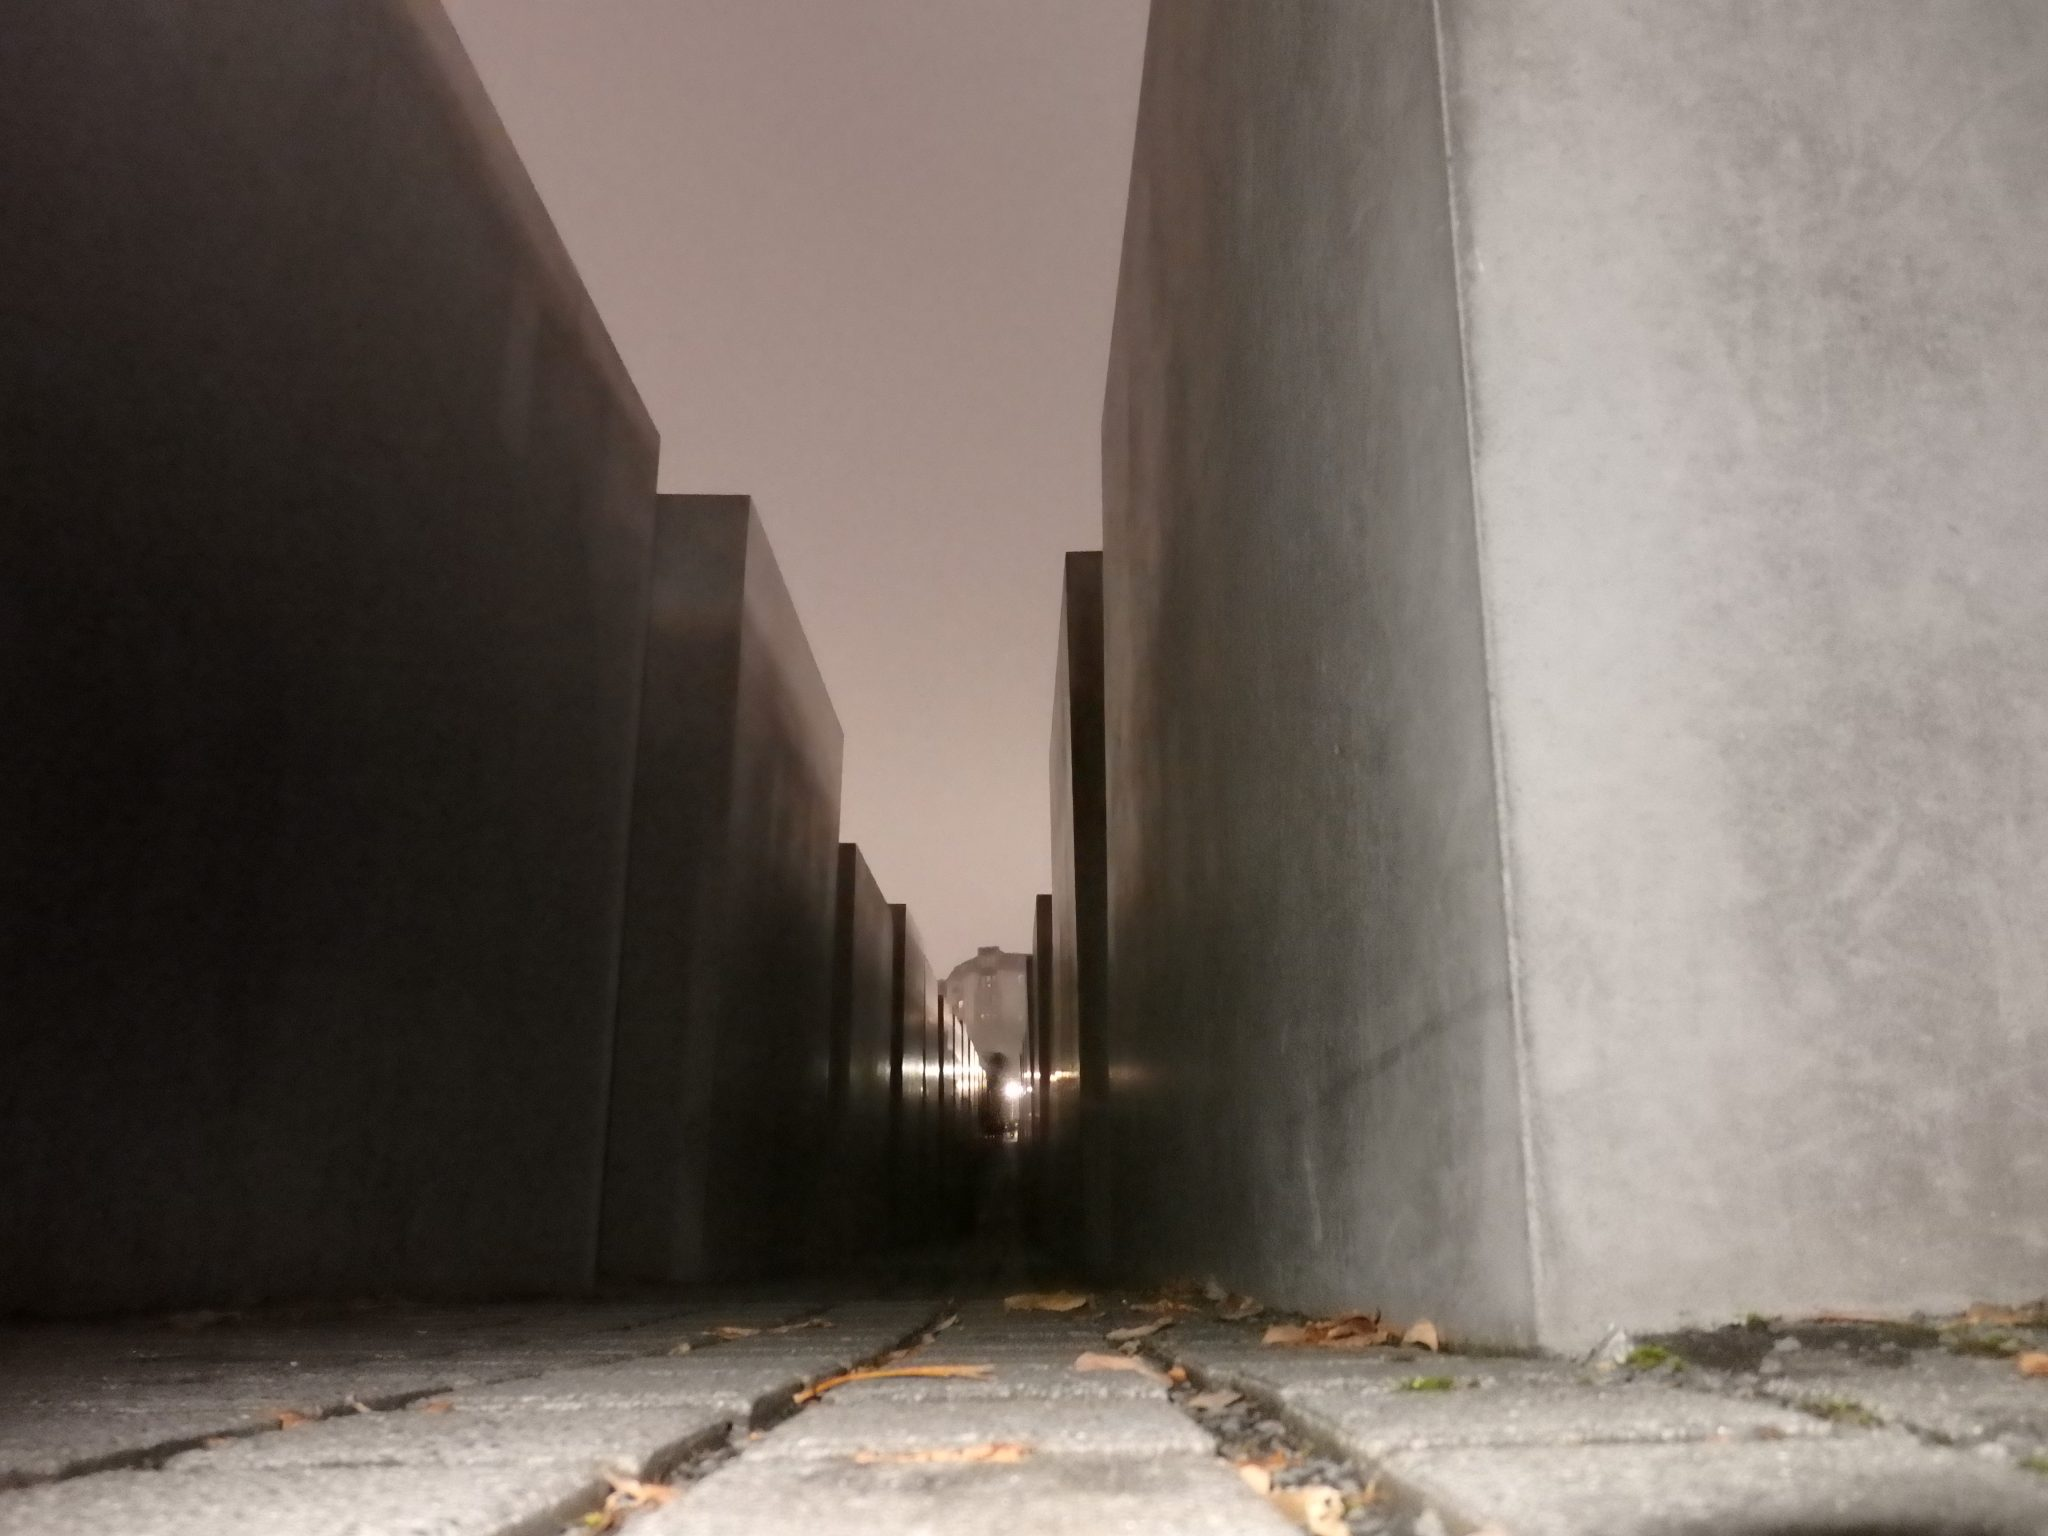 Another view of the monument at night, lit for a short distance by my camera's flash. Memorial to the Murdered Jews of Europe in Berlin